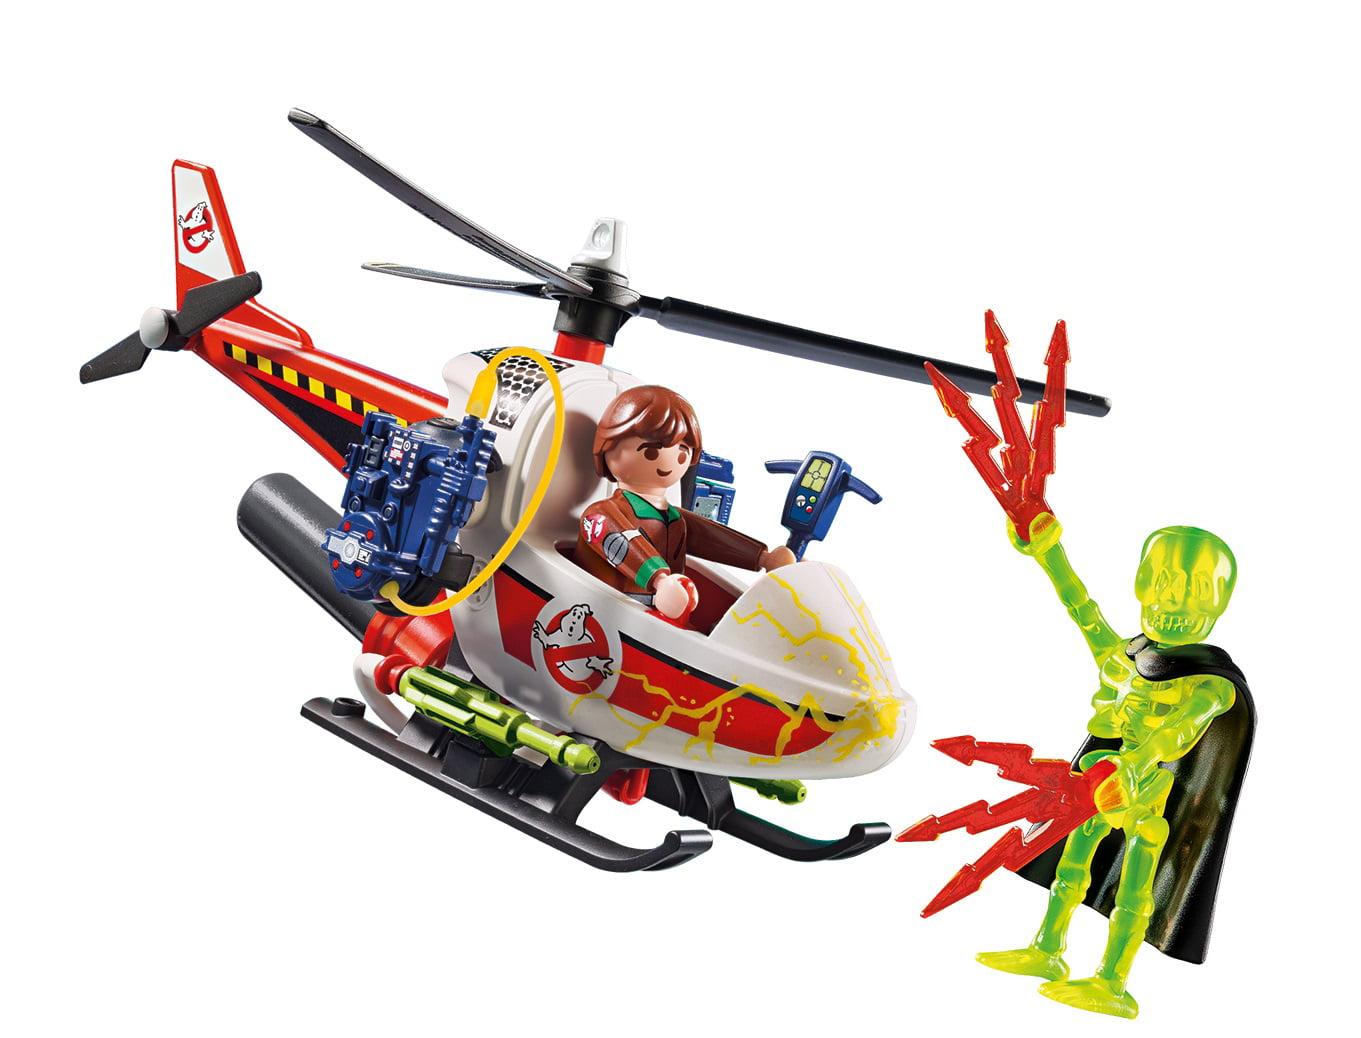 PLAYMOBIL The Real Ghostbusters Venkman with Helicopter by PLAYMOBIL